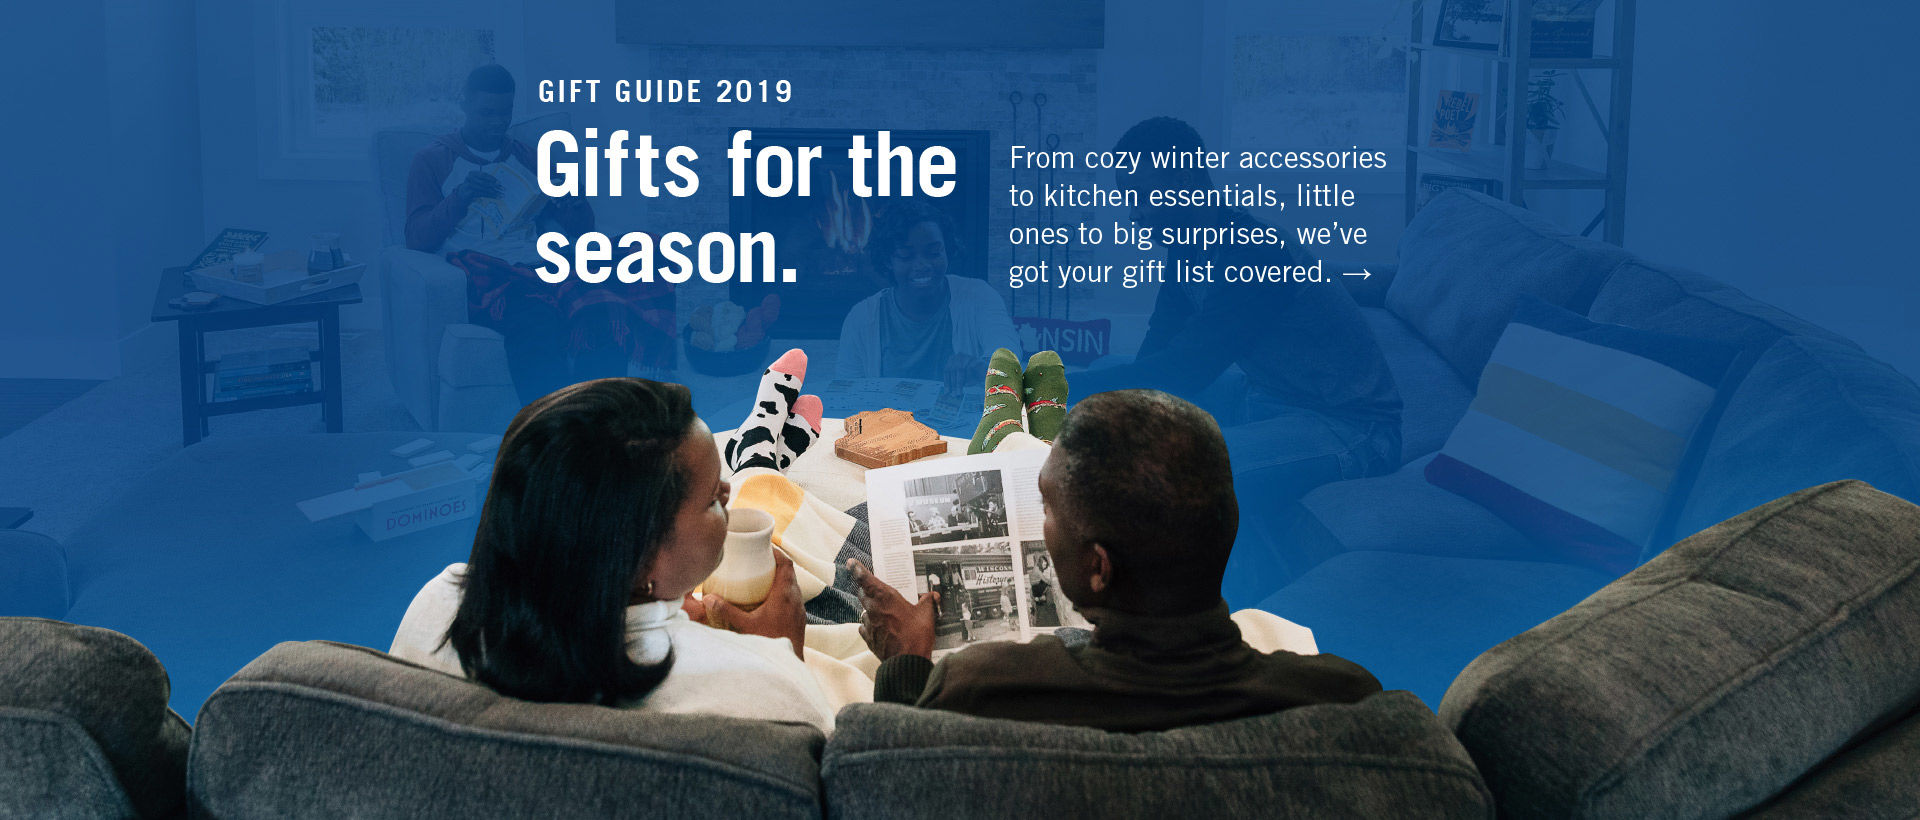 Order by December 19th for guaranteed Christmas Delivery | Gifts for the season. From cozy winter accessories to kitchen essentials, little ones to big surprises, we've got your gift list covered.